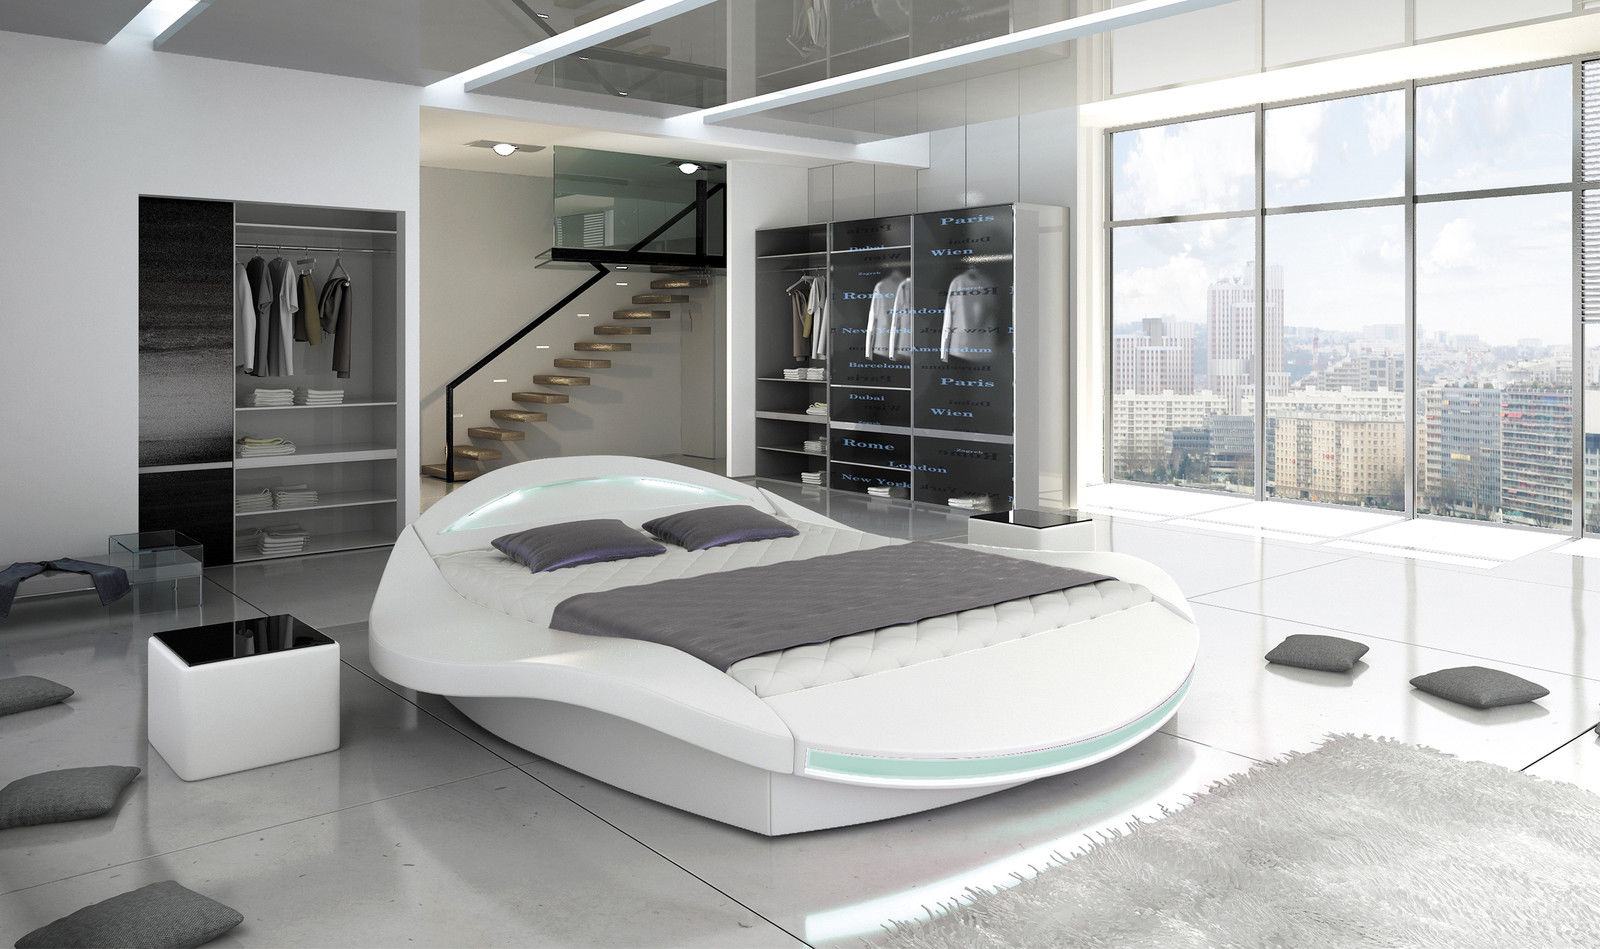 mckennetz doppelbett top its bett x ikea to with. Black Bedroom Furniture Sets. Home Design Ideas